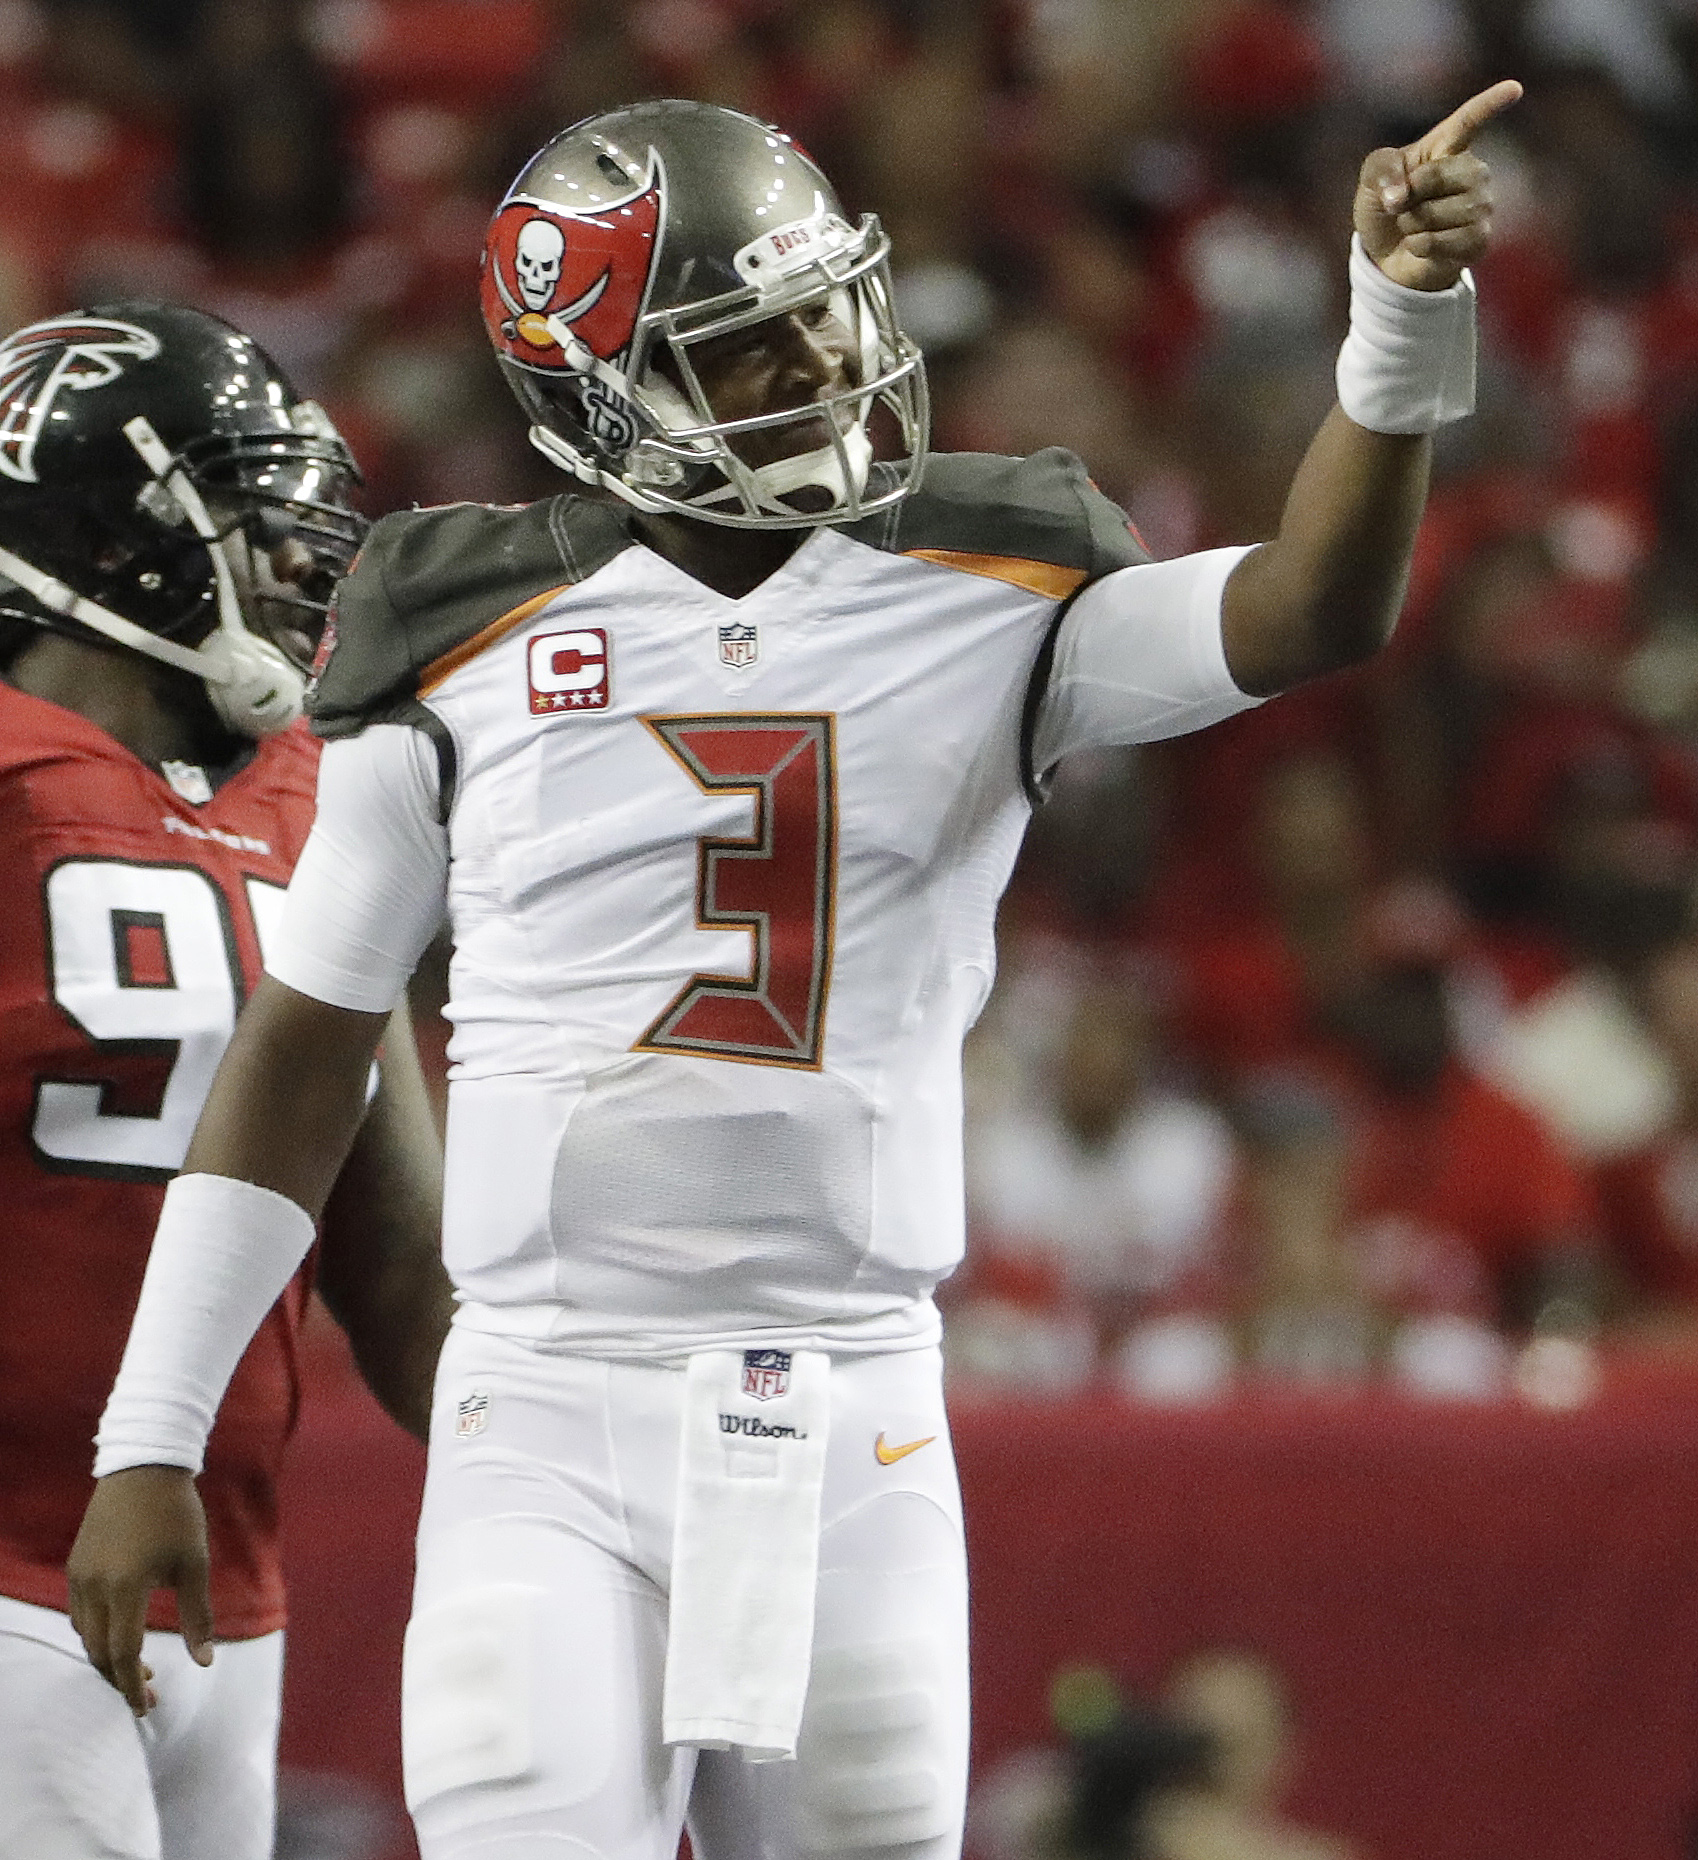 Tampa Bay Buccaneers quarterback Jameis Winston (3) signifies a Tampa Bay Buccaneers first down against the Atlanta Falcons during the first half of an NFL football game, Sunday, Sept. 11, 2016, in Atlanta. (AP Photo/David Goldman)